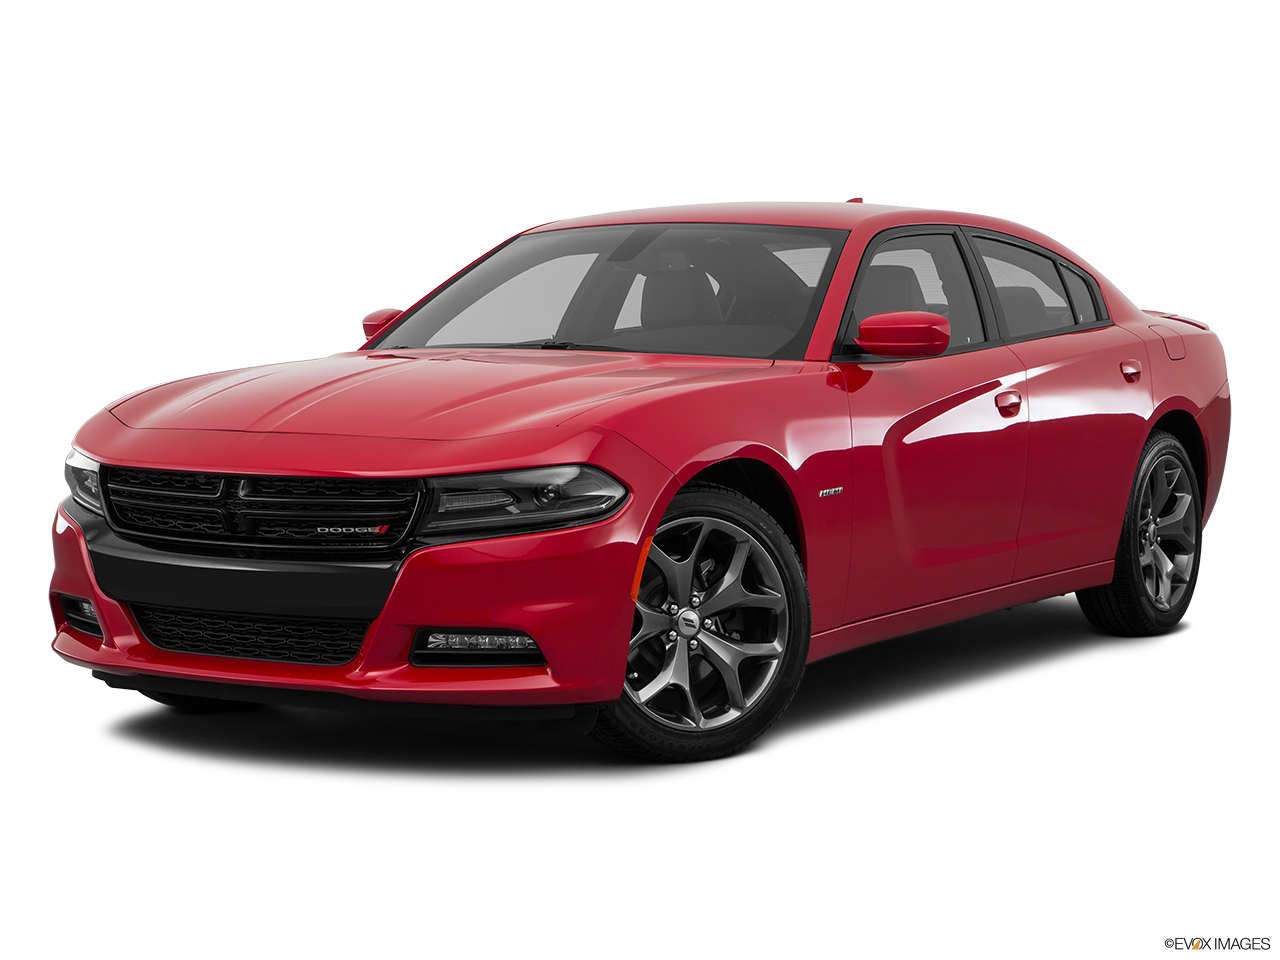 2017 dodge charger for sale in birmingham benchmark chrysler jeep dodge ram. Black Bedroom Furniture Sets. Home Design Ideas